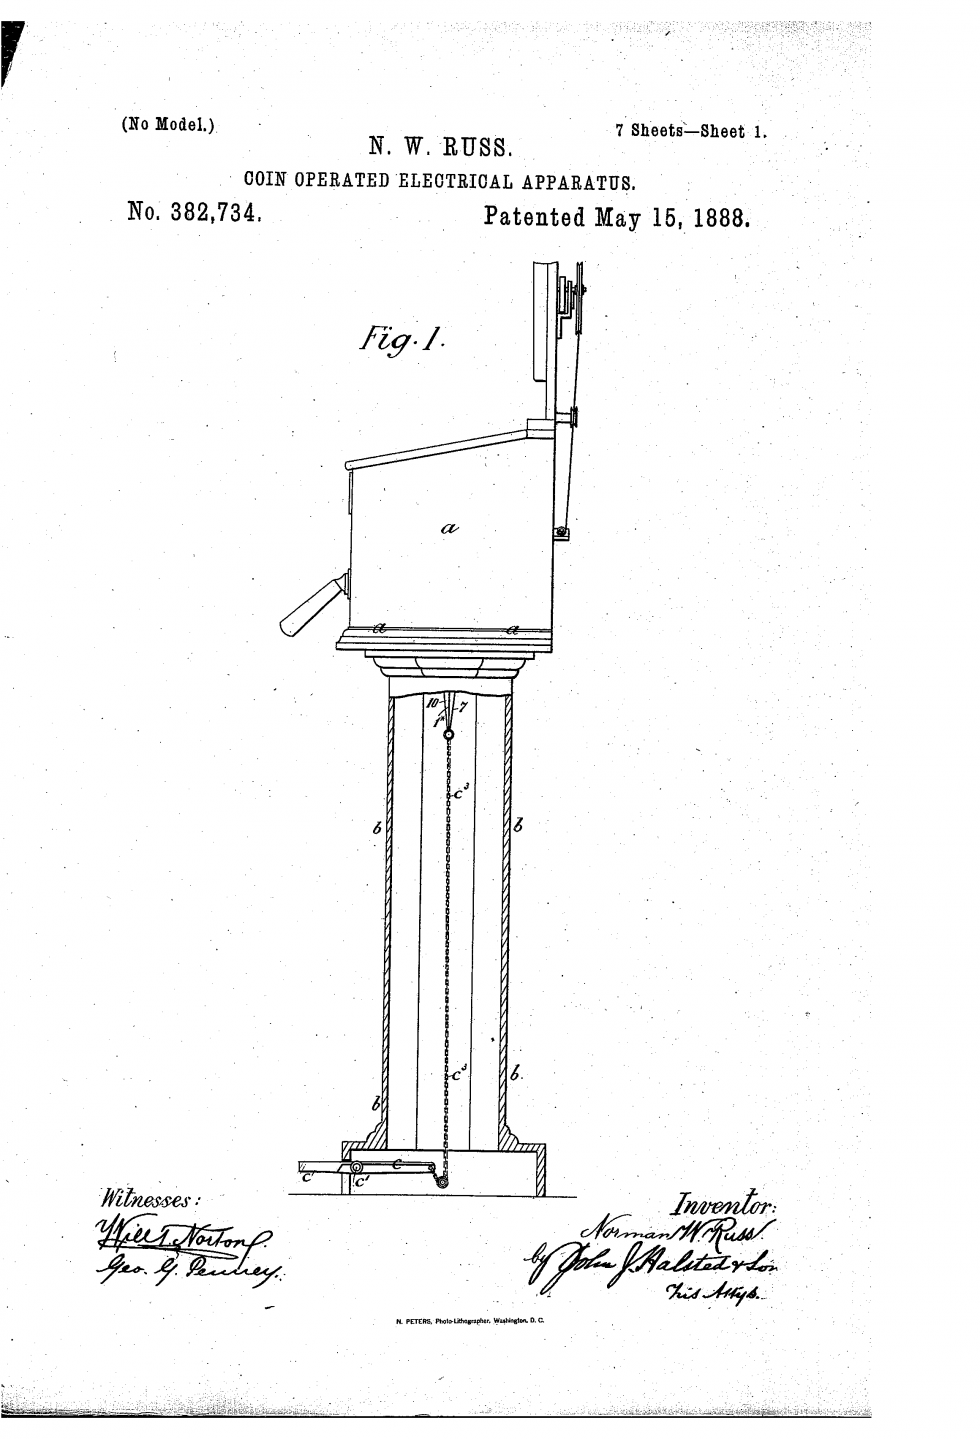 in 1888  one man patented a machine for vending  u201chealthy